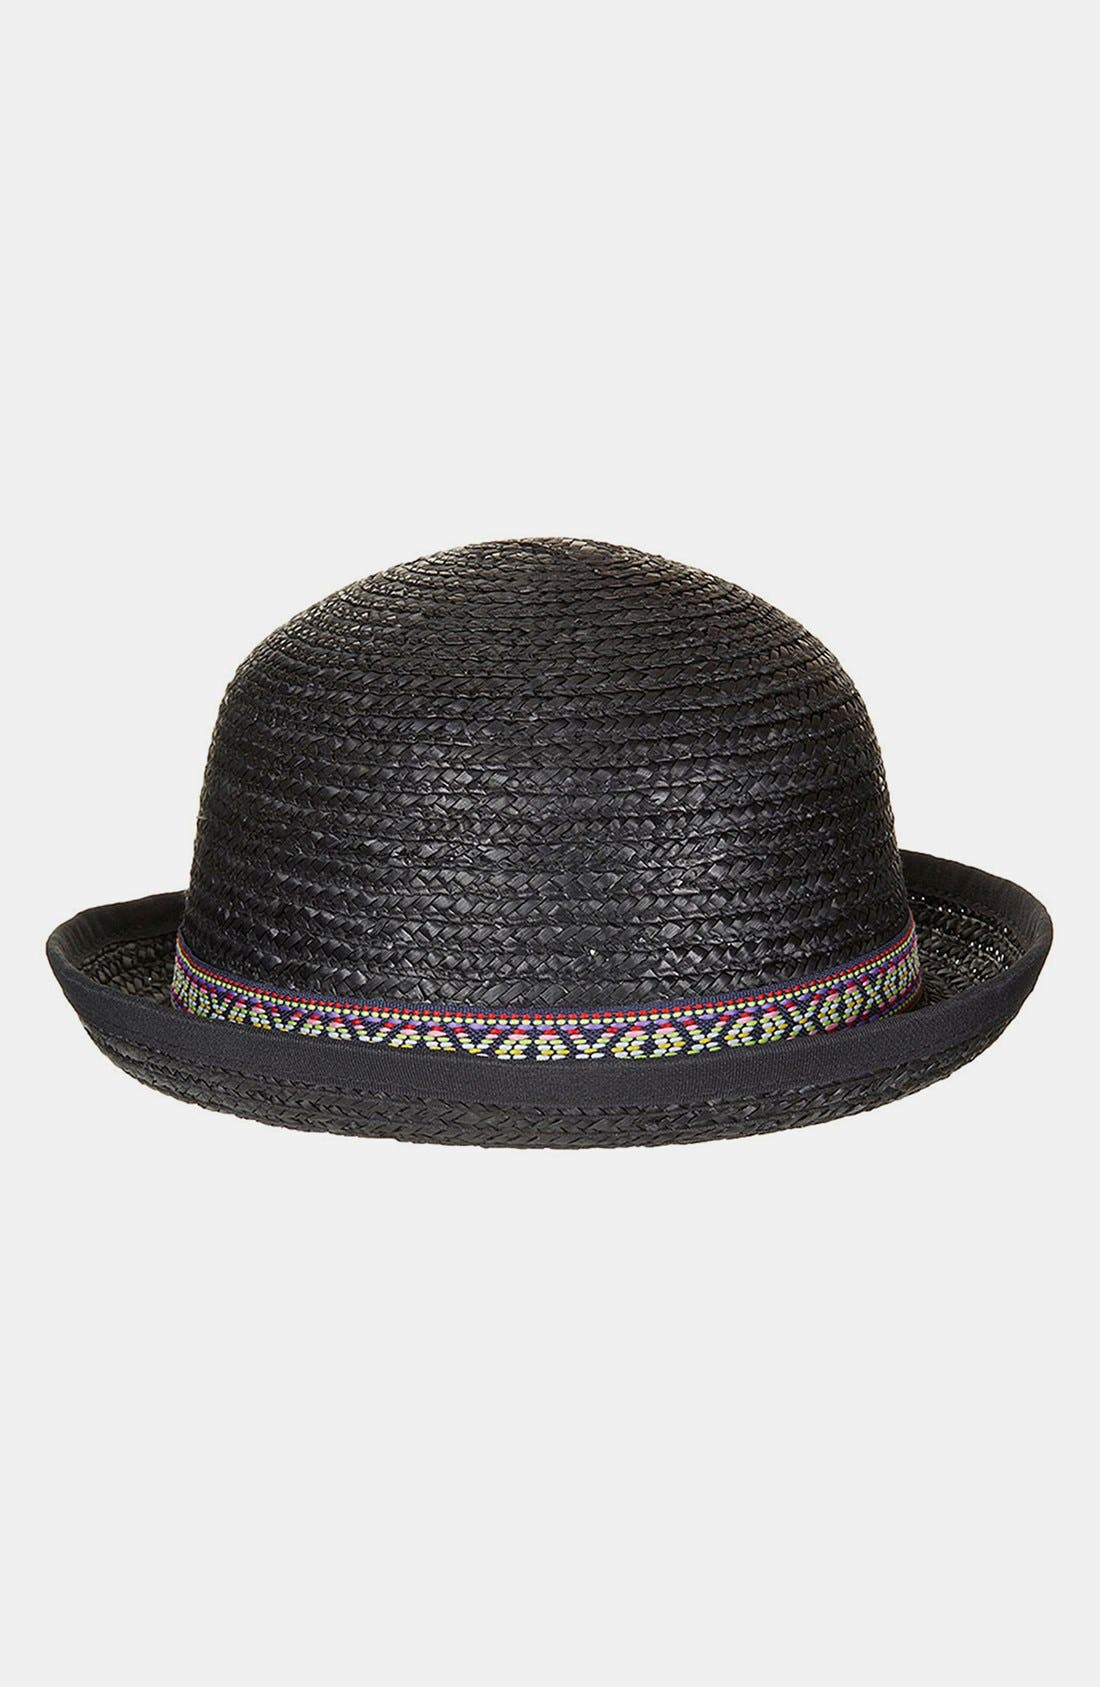 Alternate Image 1 Selected - Topshop Raffia Bowler Hat